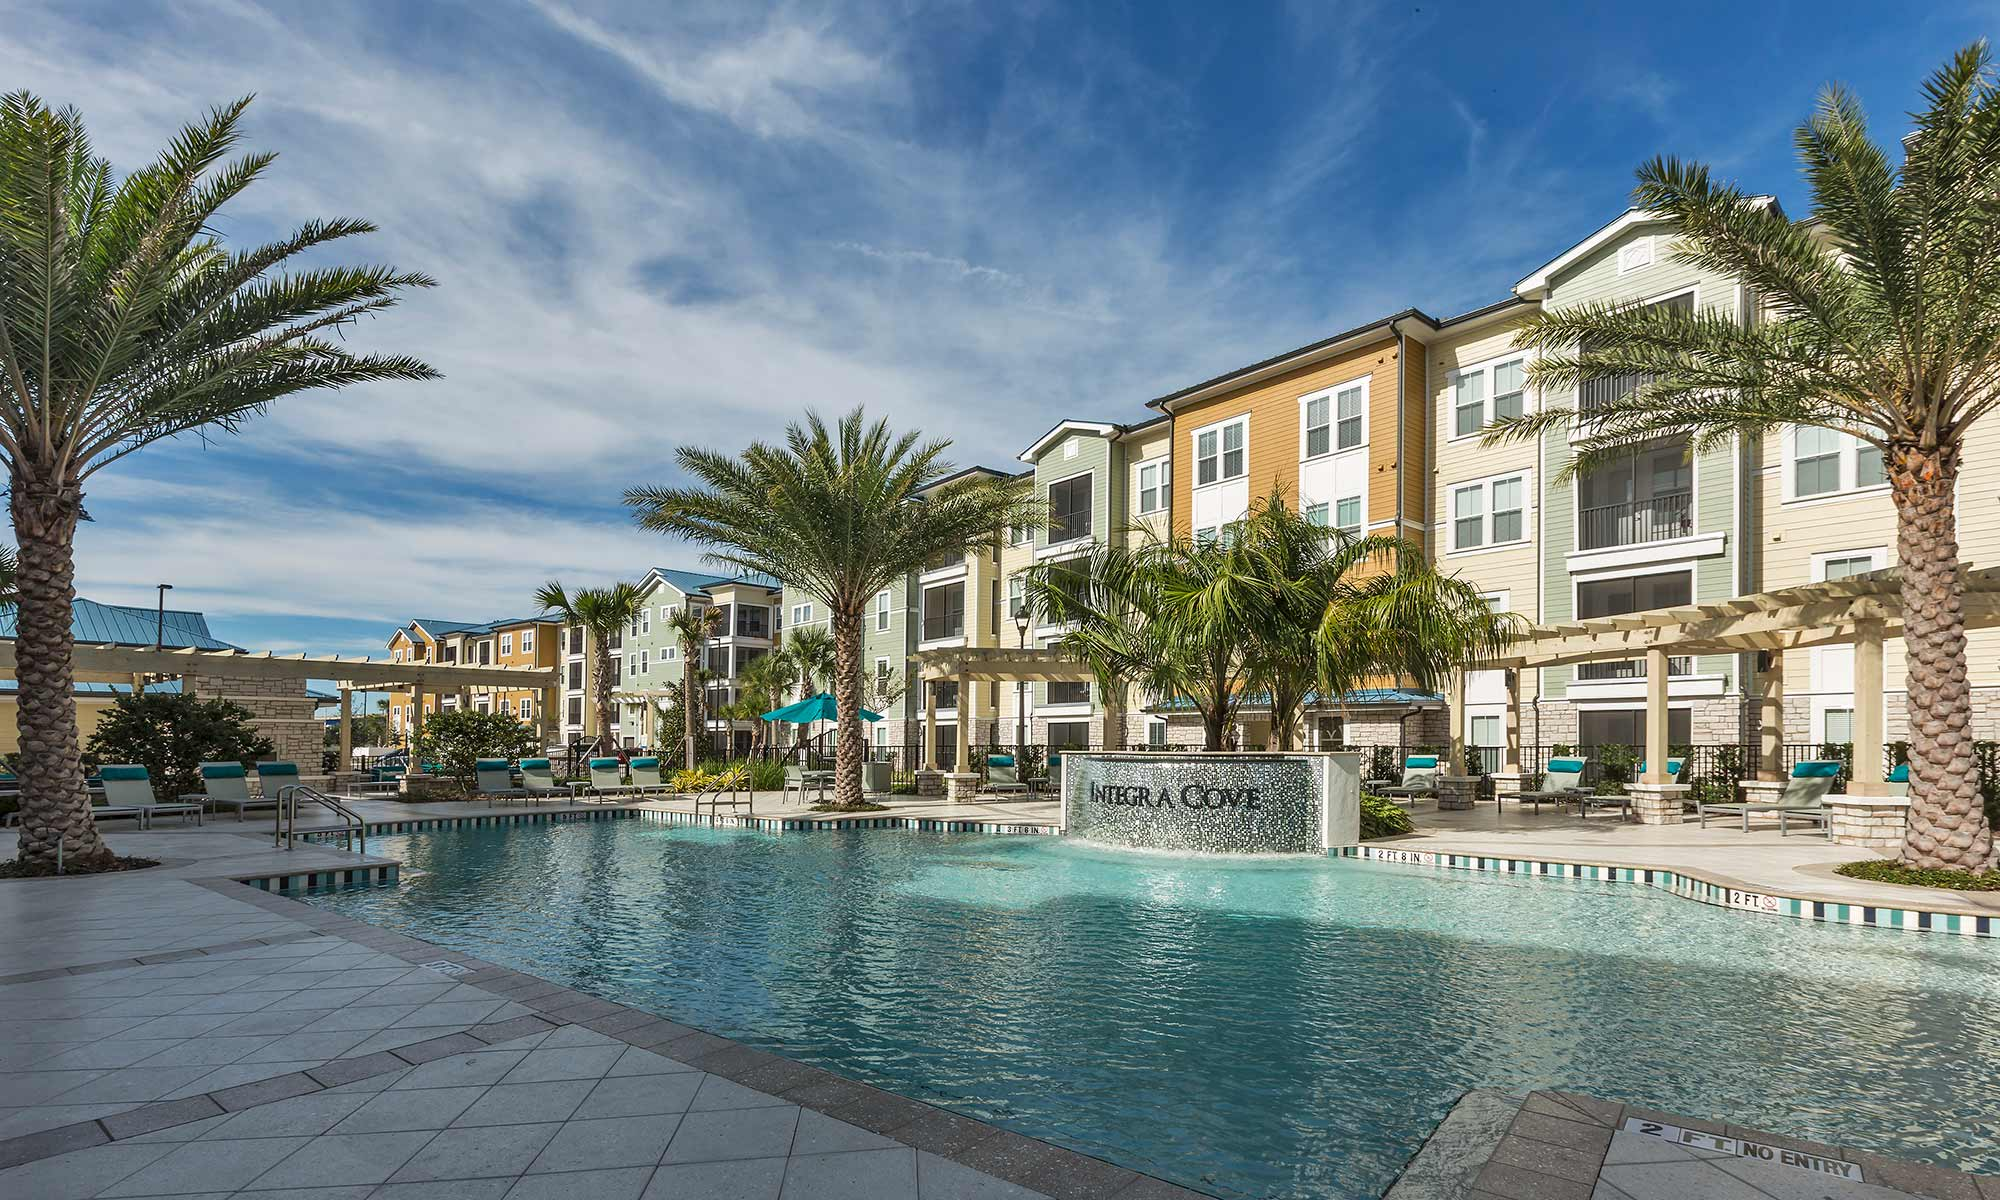 Integra Cove in Orlando, FL